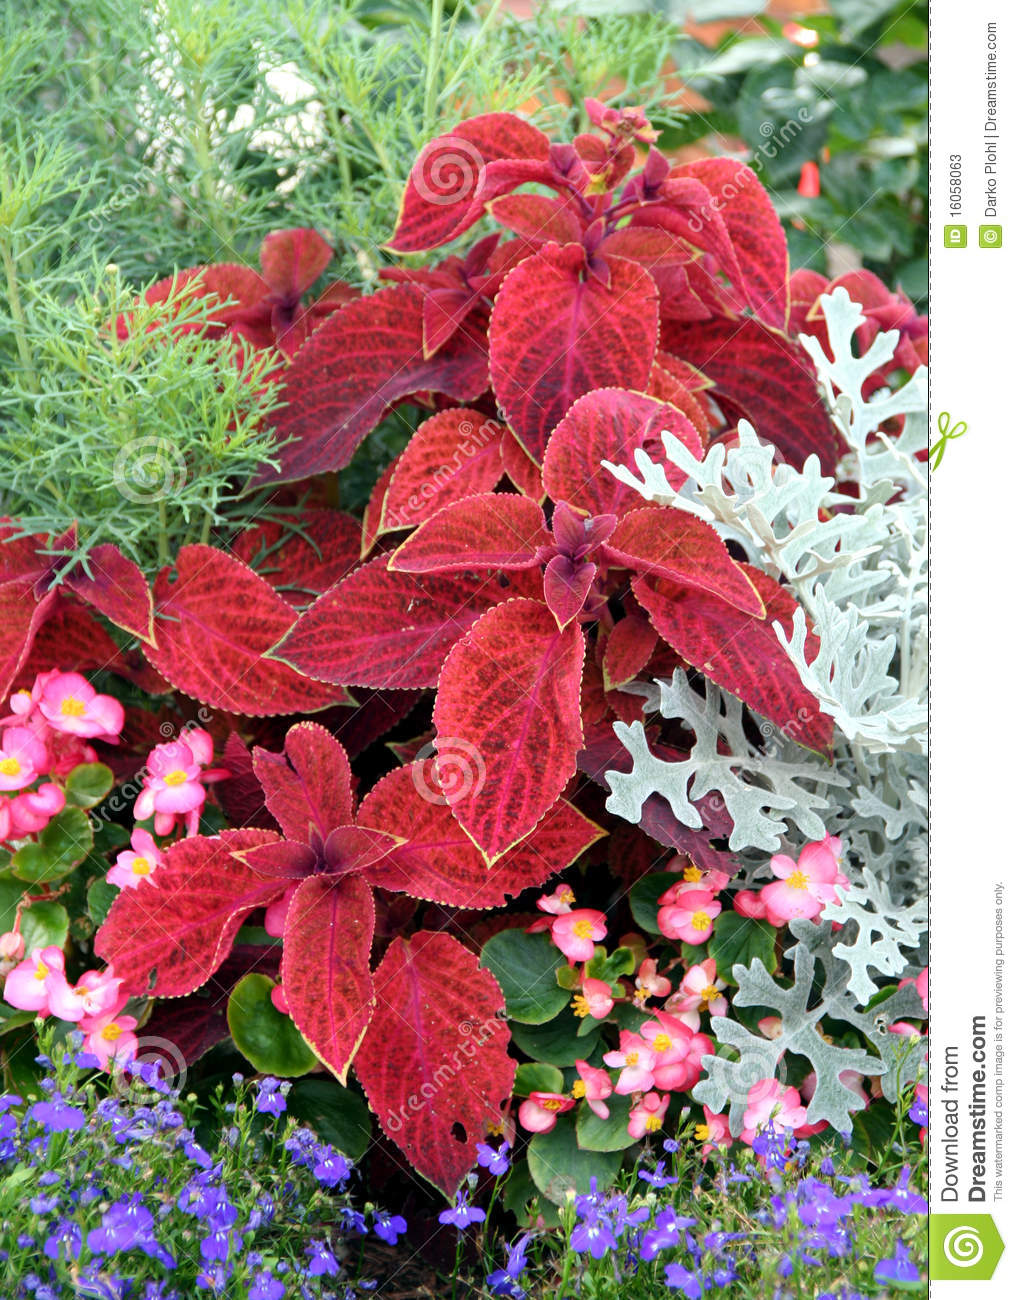 Annual Flowers Bed Stock Image Image Of Plant Blooming 16058063